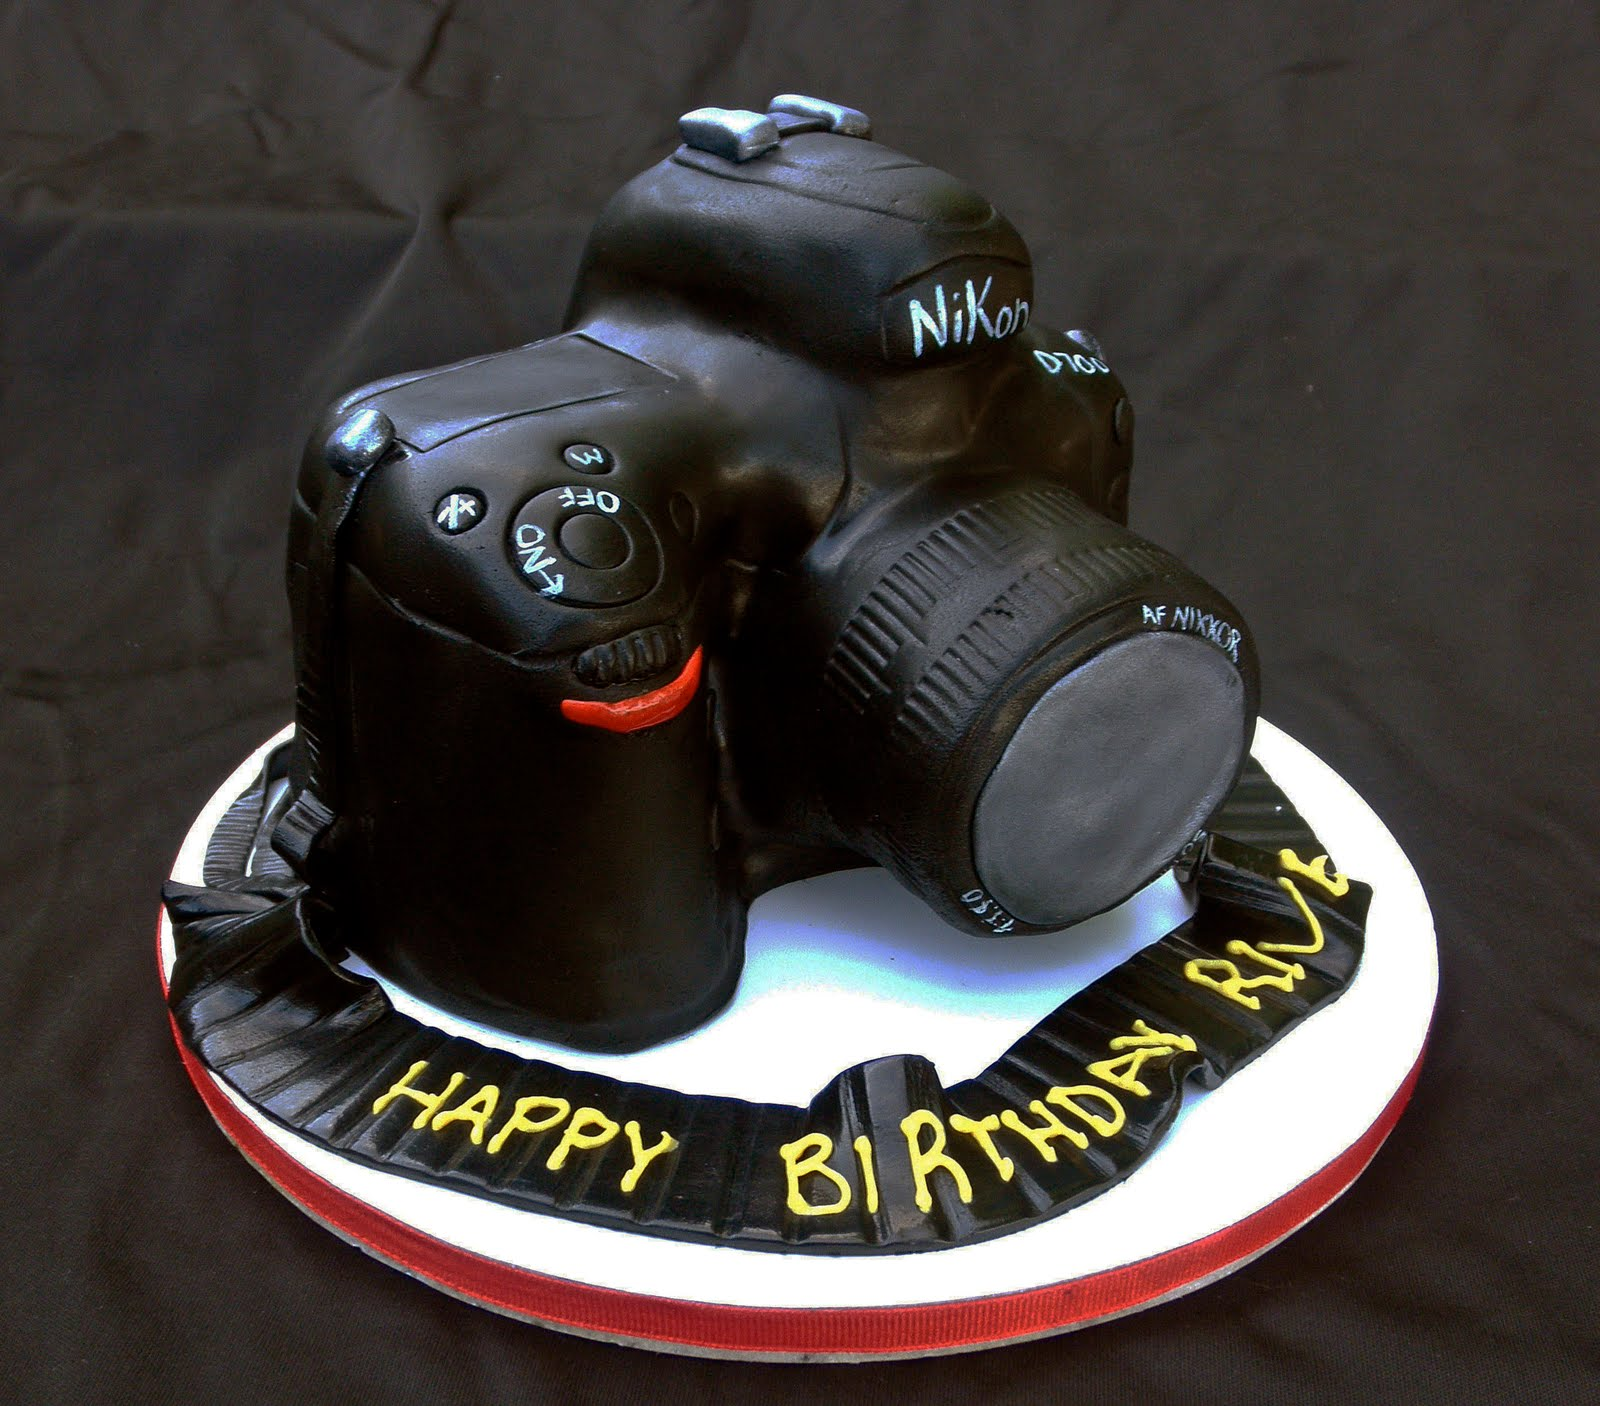 Camera Images For Cake : Sweet T s Cake Design: Nikon D700 Camera Cake